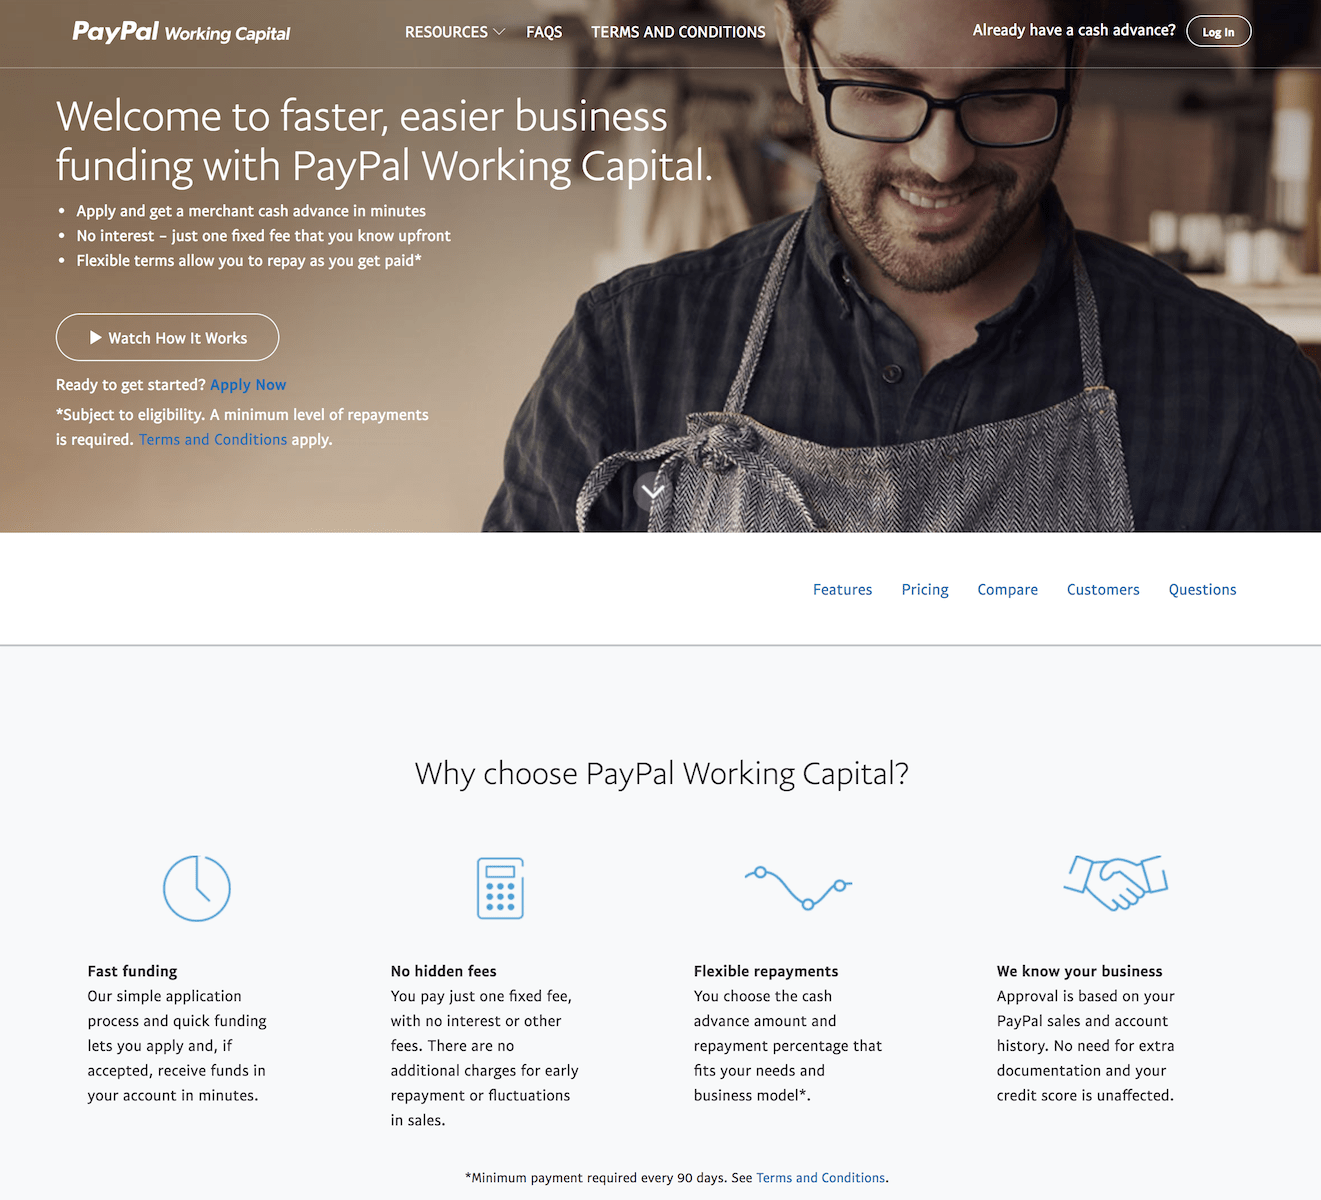 PayPal Working Capital